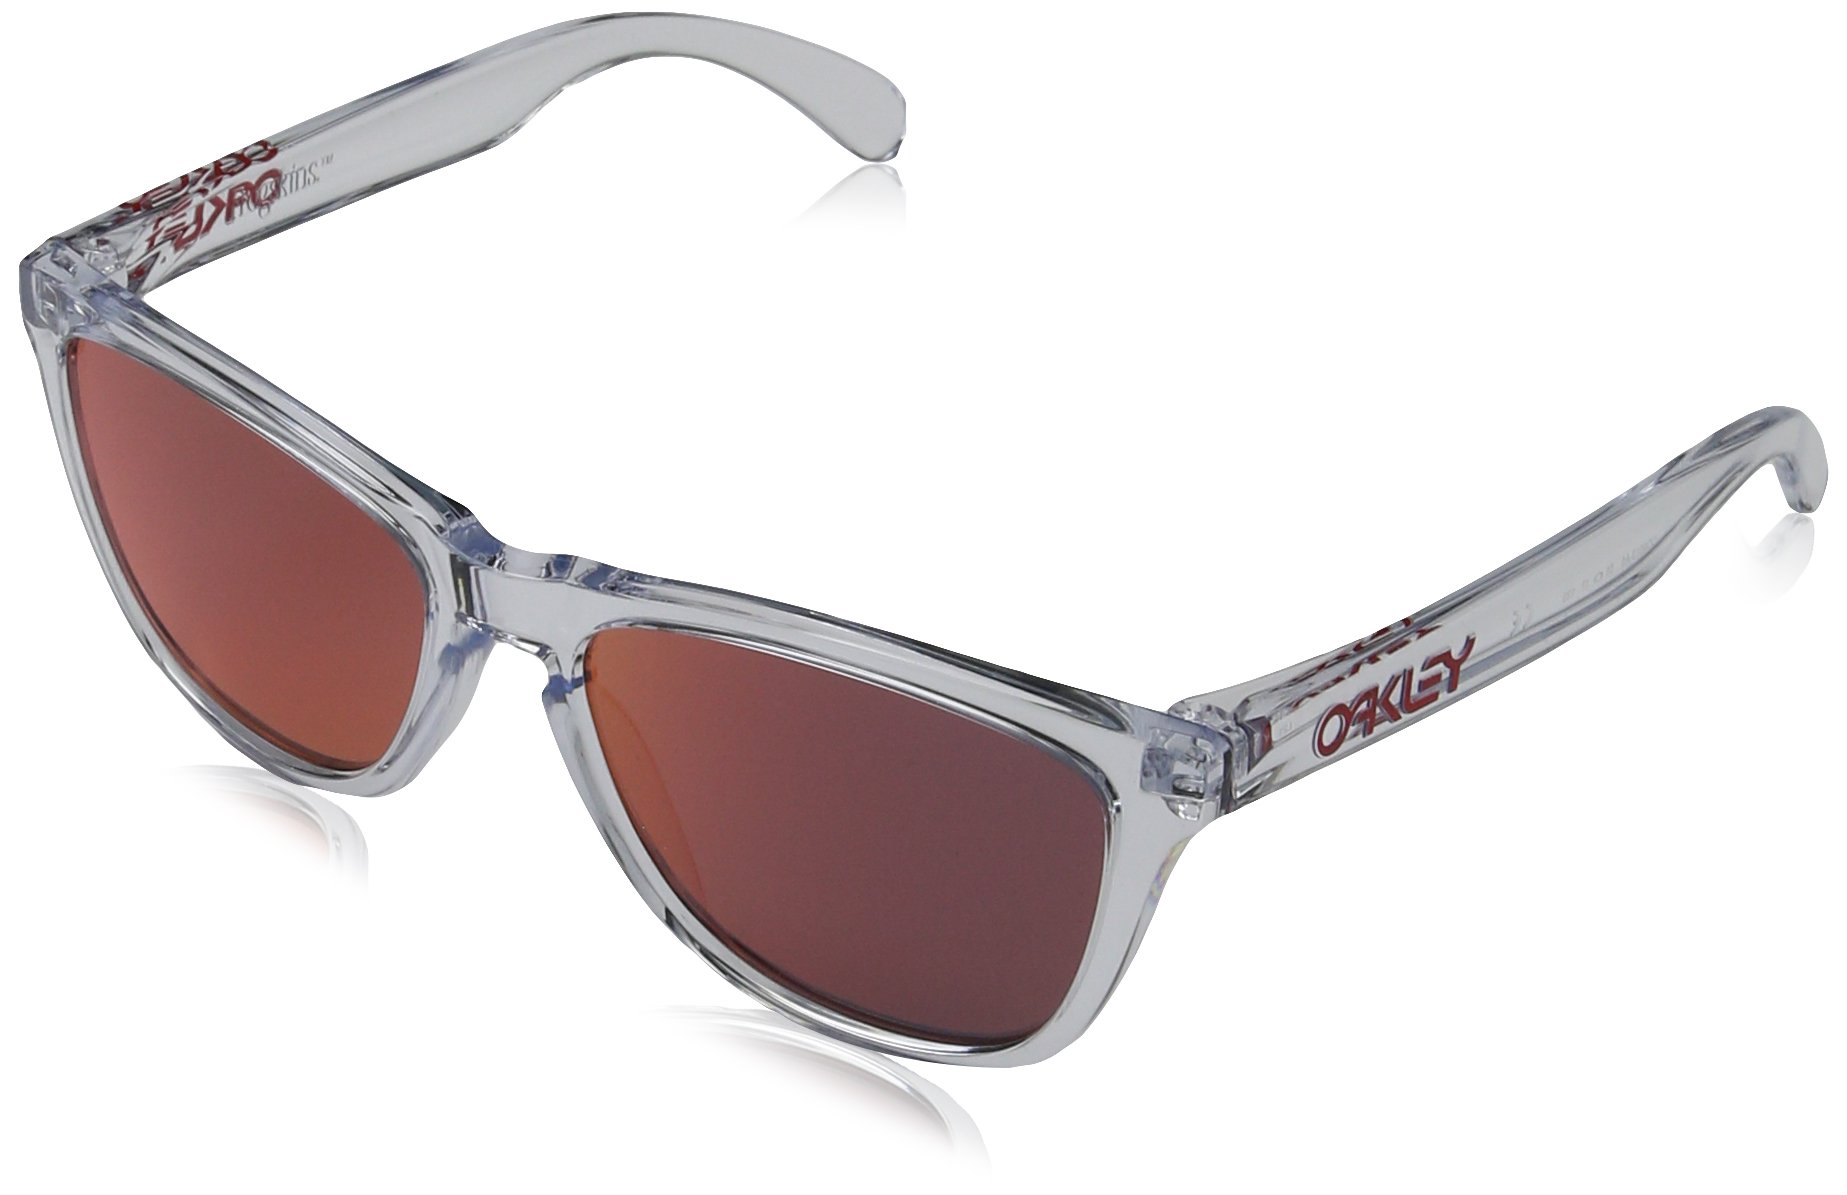 Oakley Men's OO9013 Frogskins Square Sunglasses, Polished Clear/Torch Iridium, 55 mm